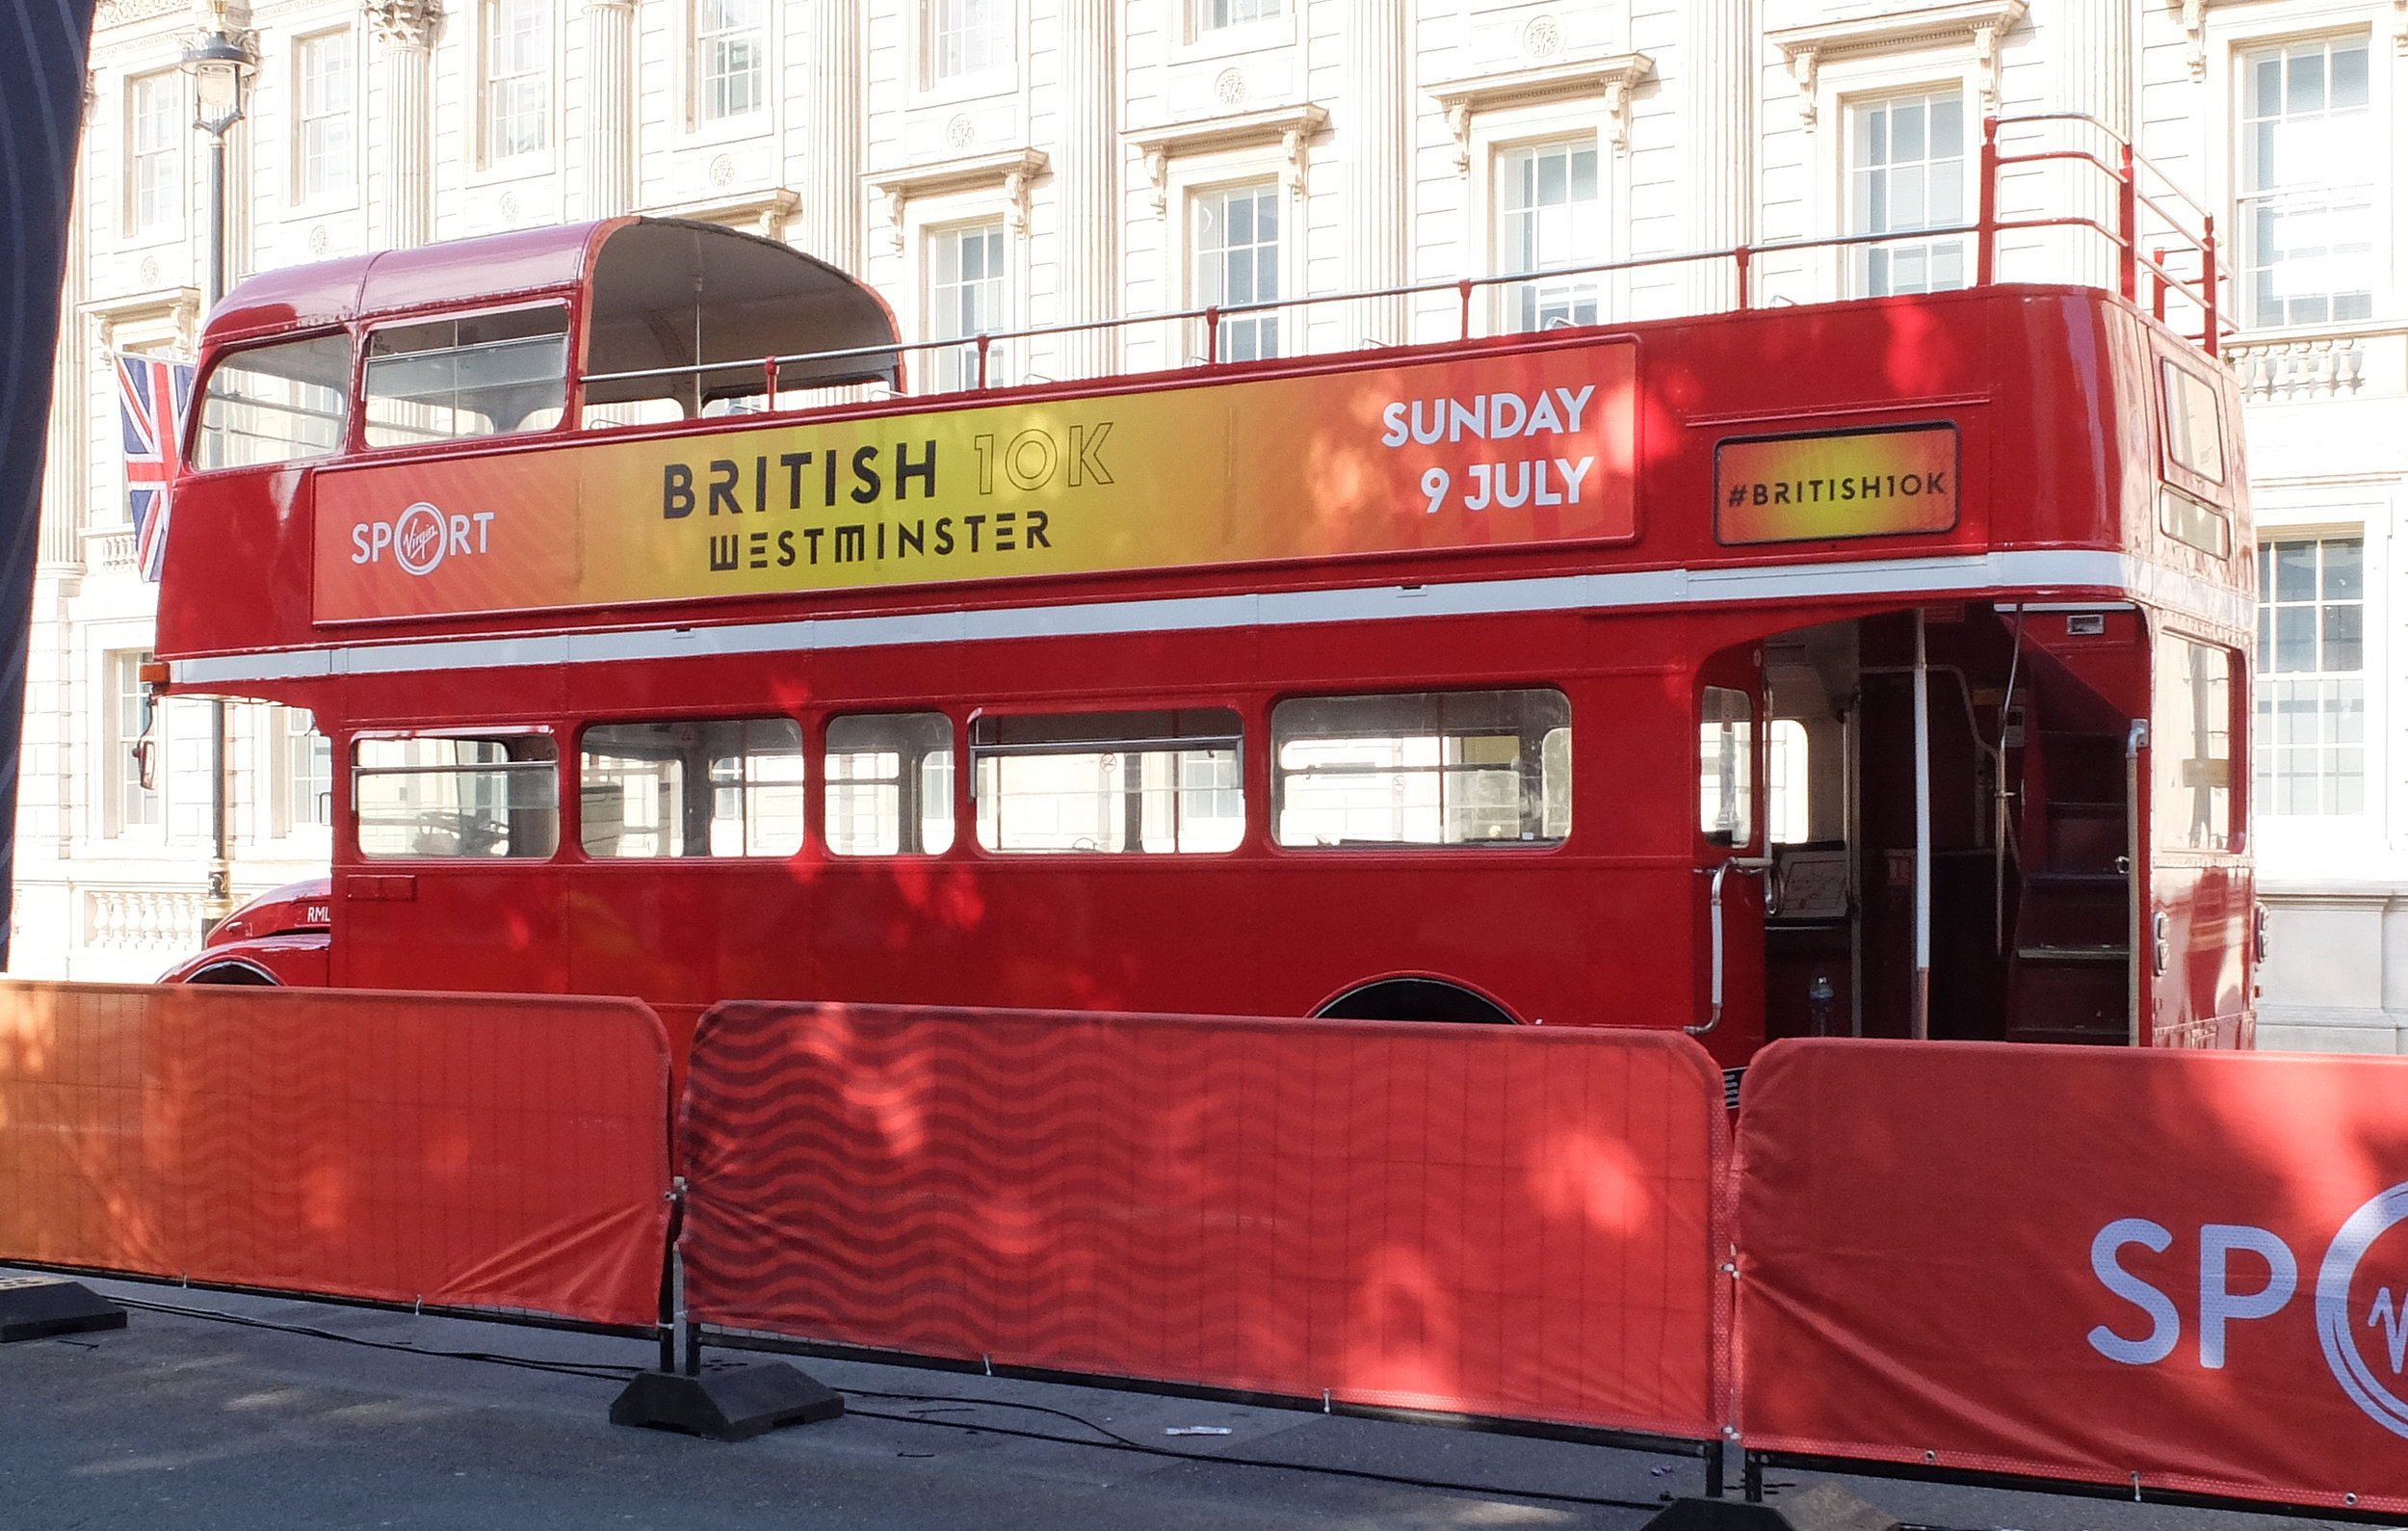 Business Hire & Hospitality - The Routemaster bus is perfect to transport your staff, guests or clients. We also offer branding options from personalised destination blinds to full length ad banners.